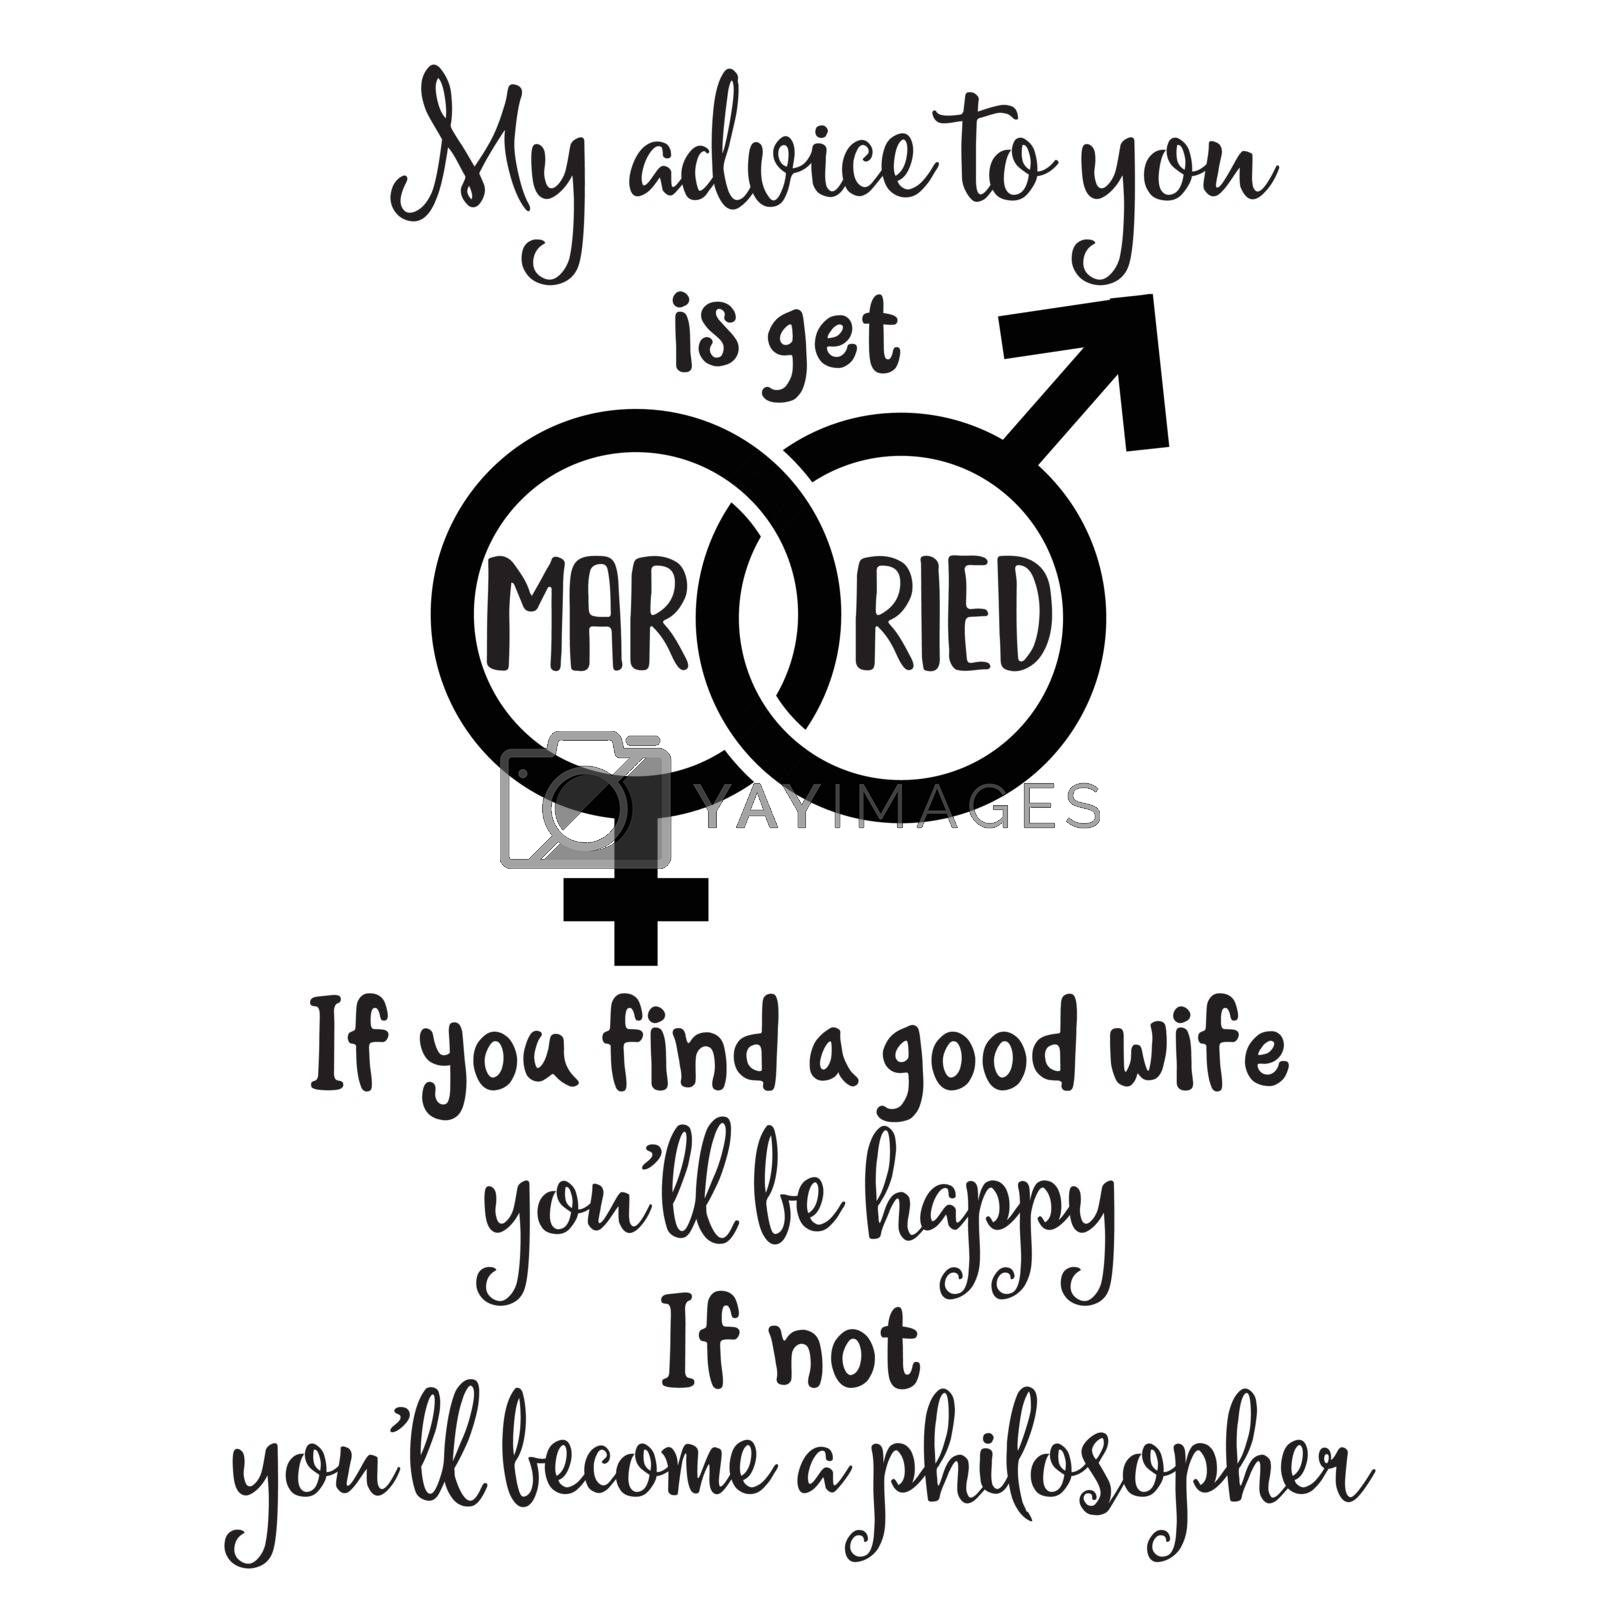 """""""My advice to you is get married. If you fing a good wife you'll be happy, if not you'll become a philosopher"""". Funny quote about marriage"""